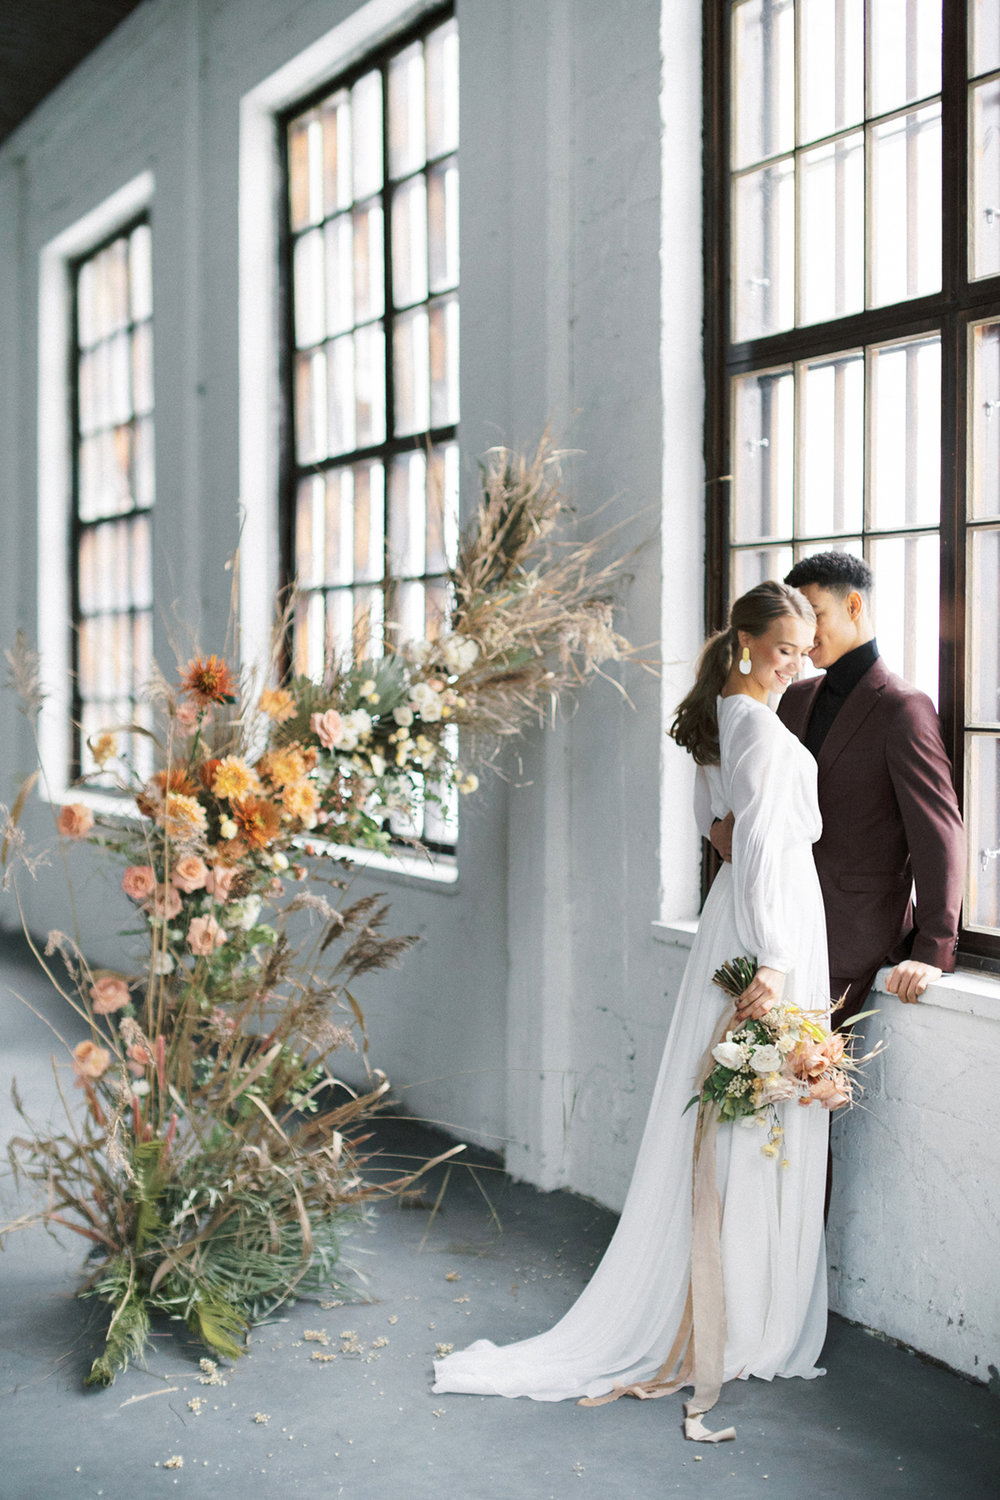 A Vibrant Loft Winter Wedding in Fiskars, Finland